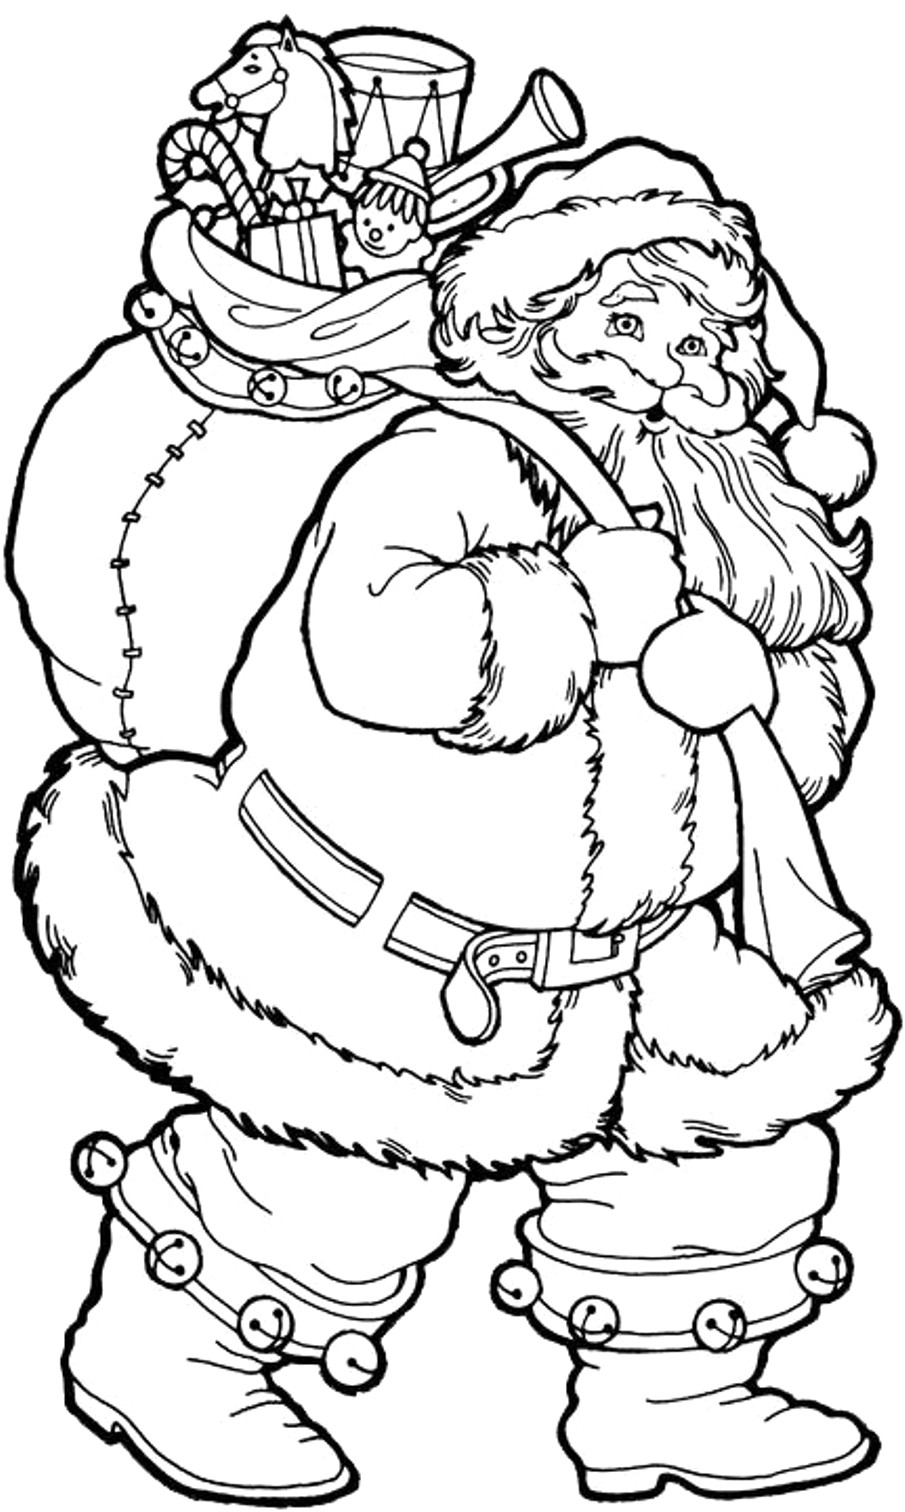 Xmas Coloring Pages With Christmas Tree And Santa Download 17 G Printable